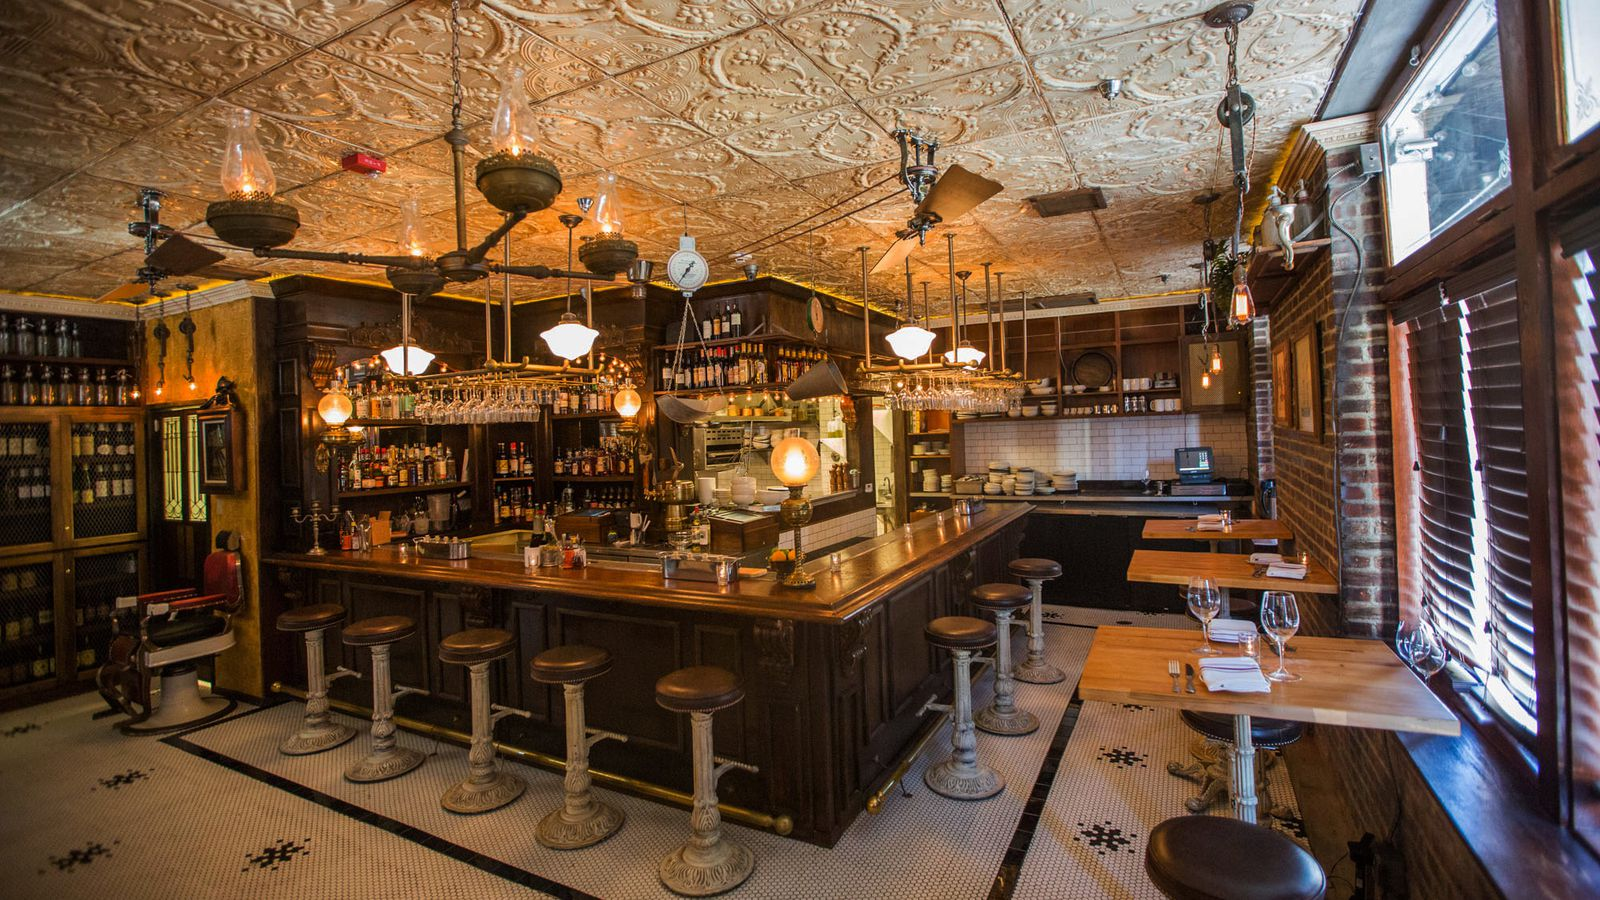 ... & Barbers, The Houston Bros First Hollywood Restaurant - Eater LA